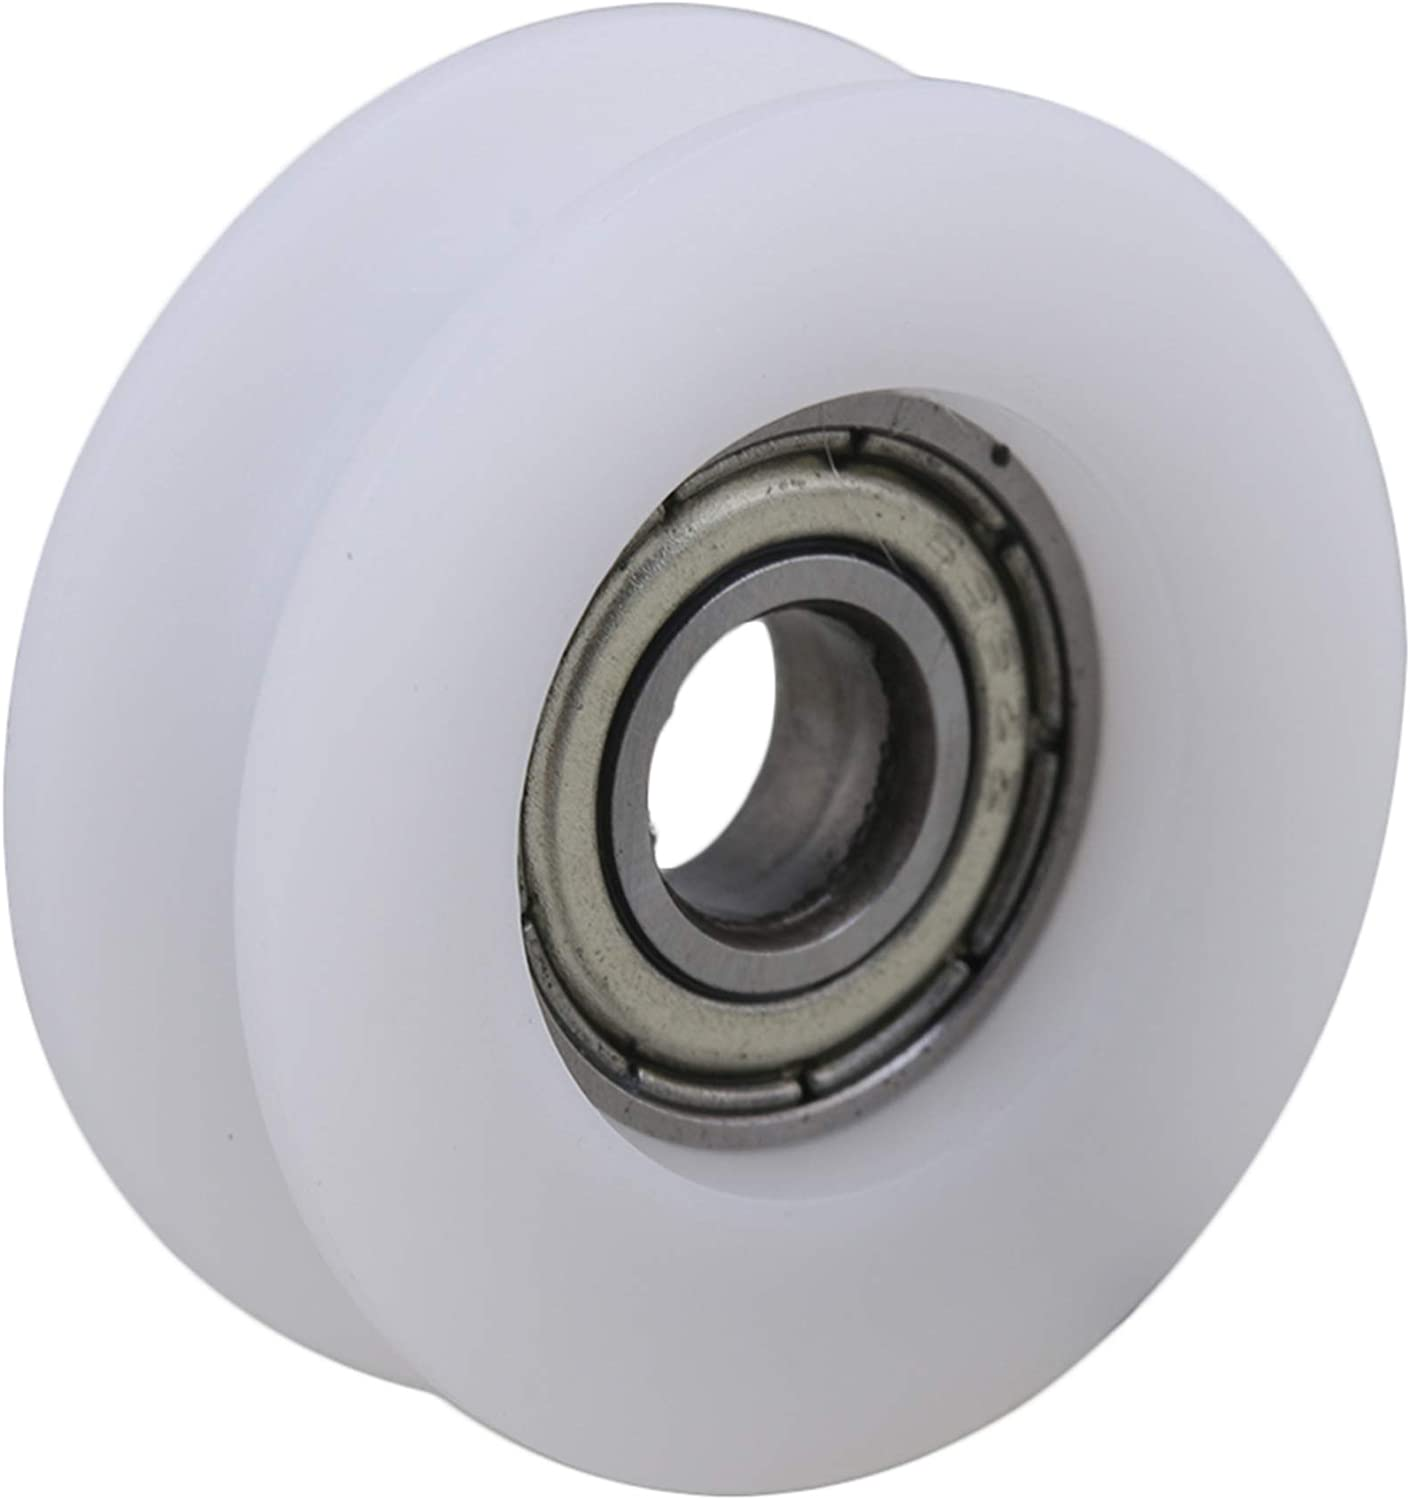 CNBTR 4Pieces 6x27x9mm Flat Plastic Coated Sealed Bearing Steel 696ZZ Deep U-Type Guide Pulley Rail Ball Rolling Bearing Wheel White